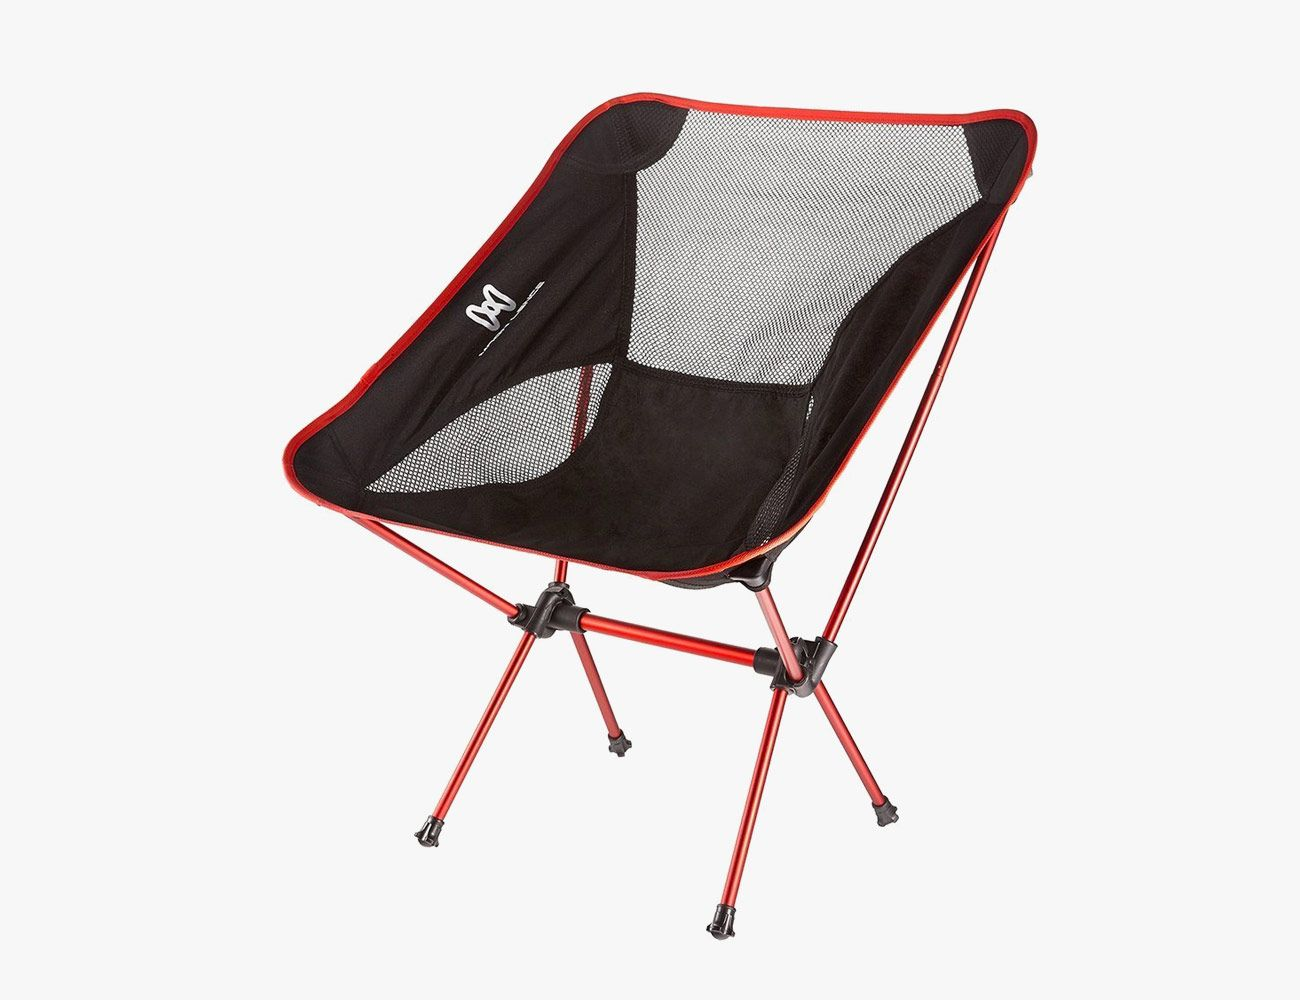 Wondrous The Best Camping Chairs Available For Every Camper Gear Spiritservingveterans Wood Chair Design Ideas Spiritservingveteransorg